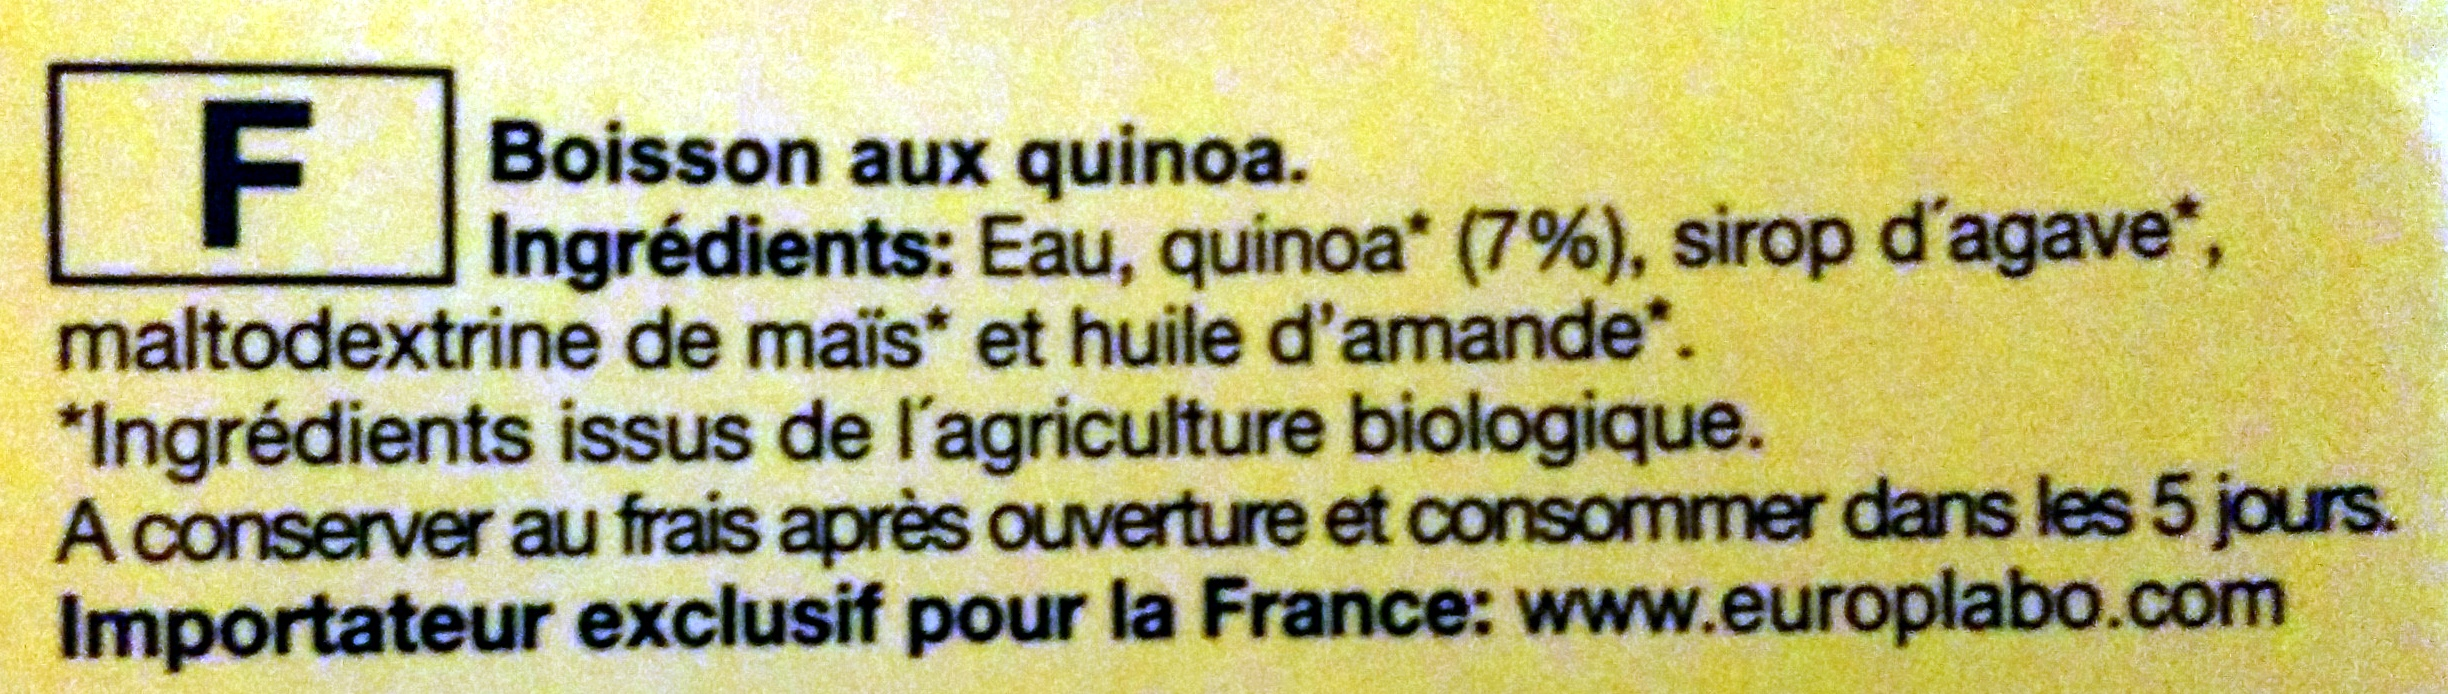 Boisson au quinoa agave Bio - Ingredients - fr